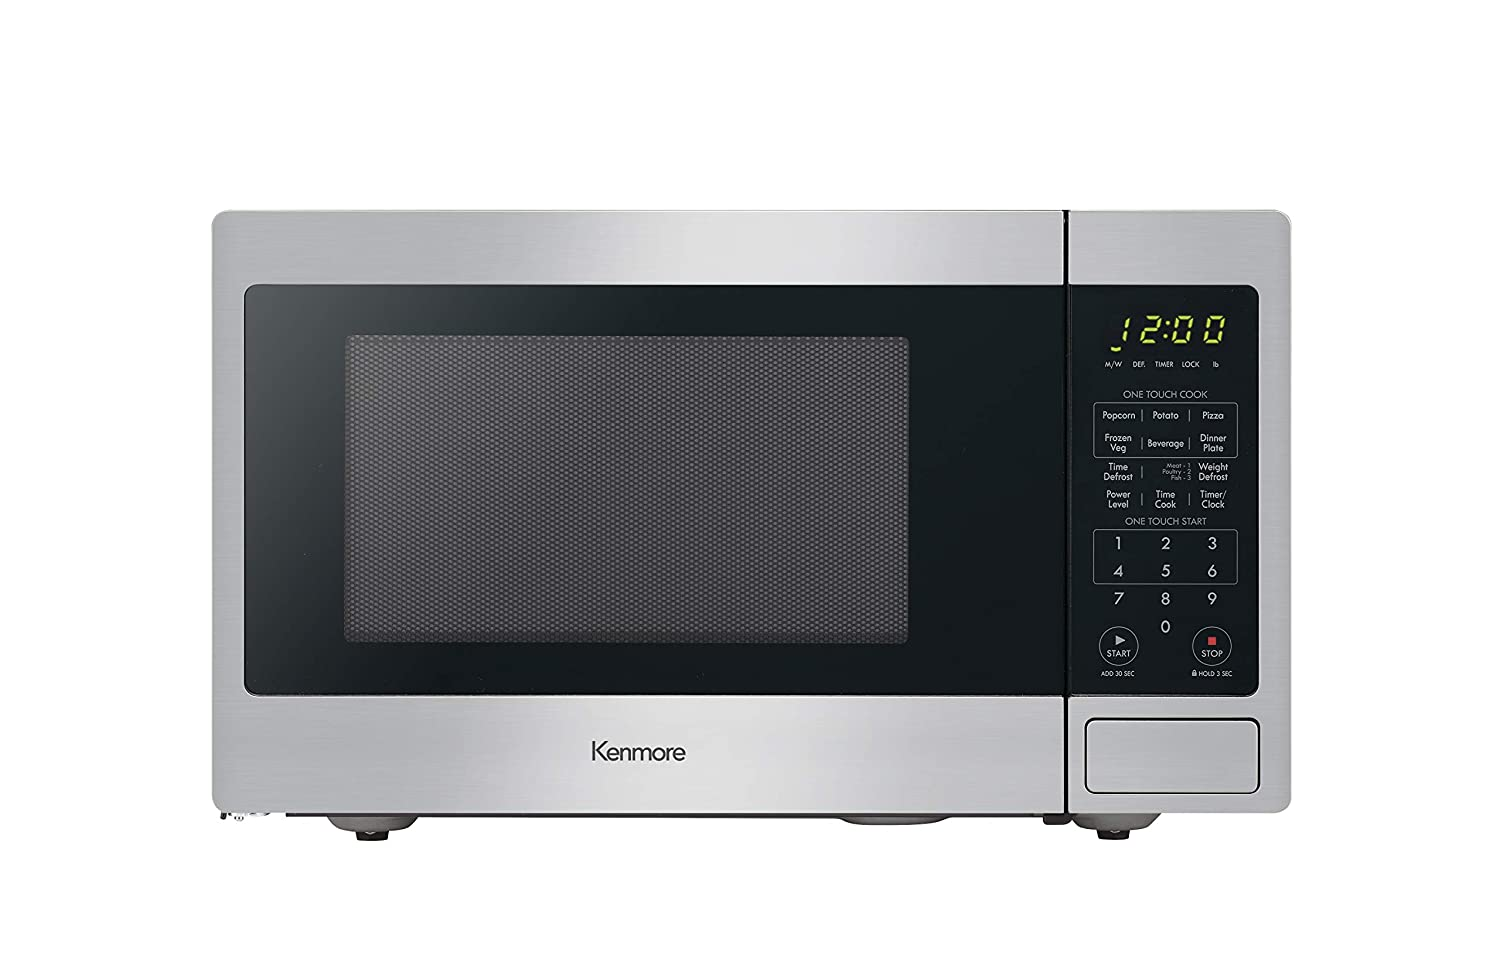 Kenmore 70923 0.9 cu. ft Countertop Microwave, Stainless Steel